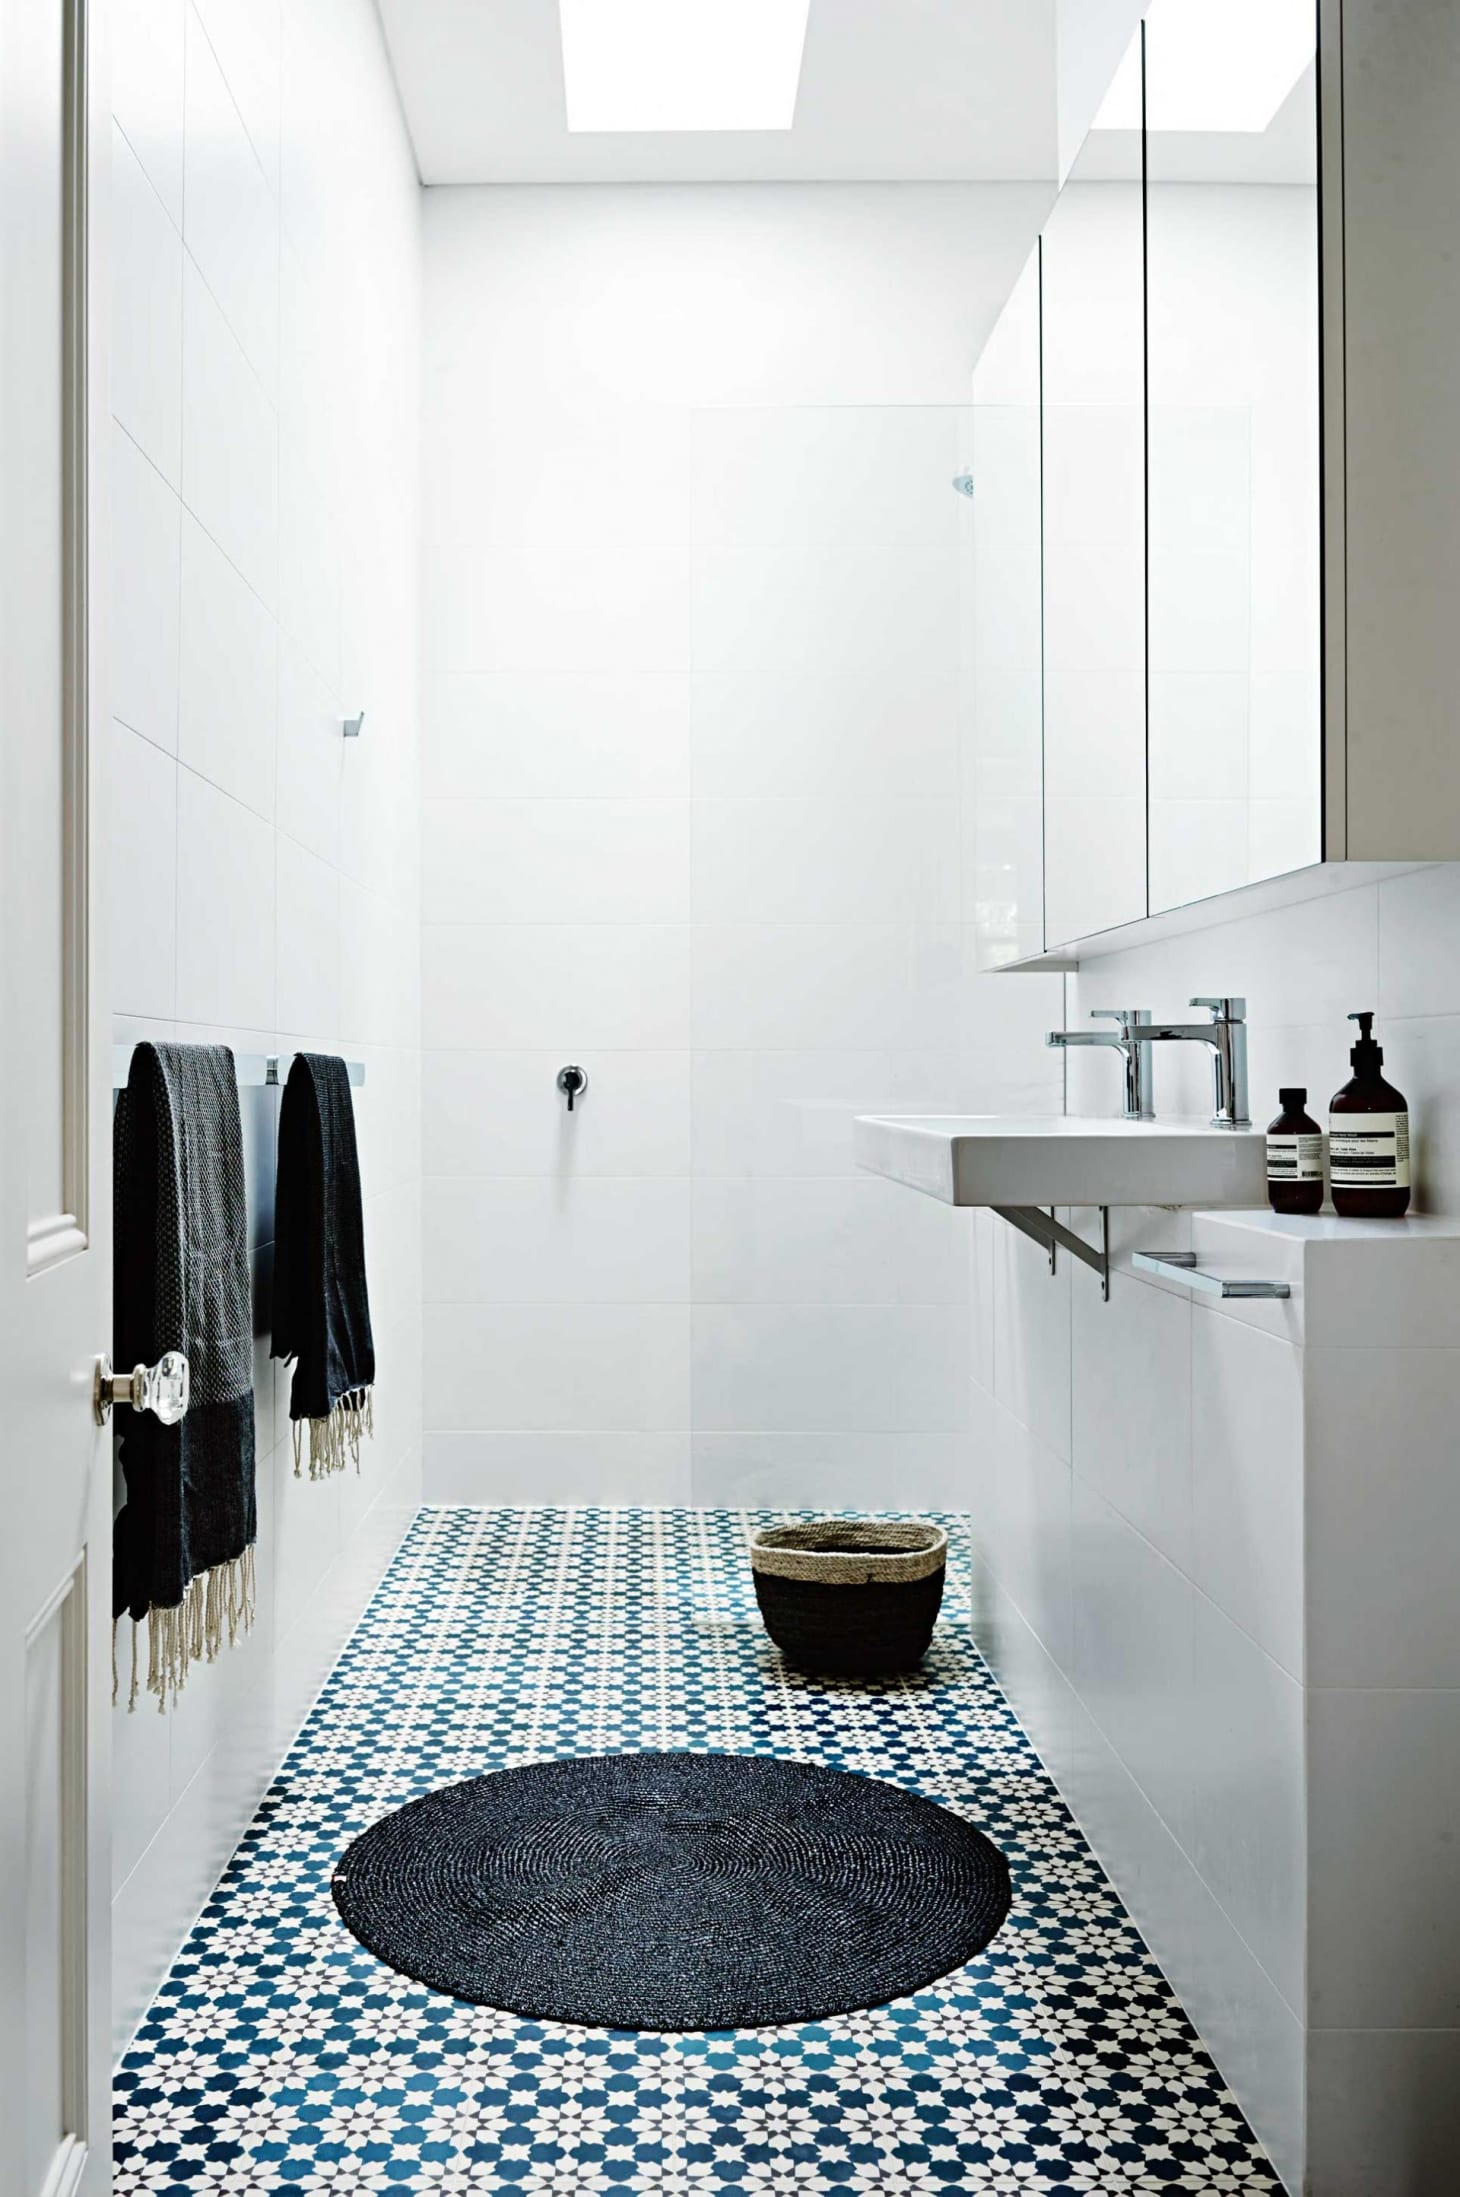 Stylish Remodeling Ideas for Small Bathrooms | Apartment ... on Small Apartment Bathroom  id=73382